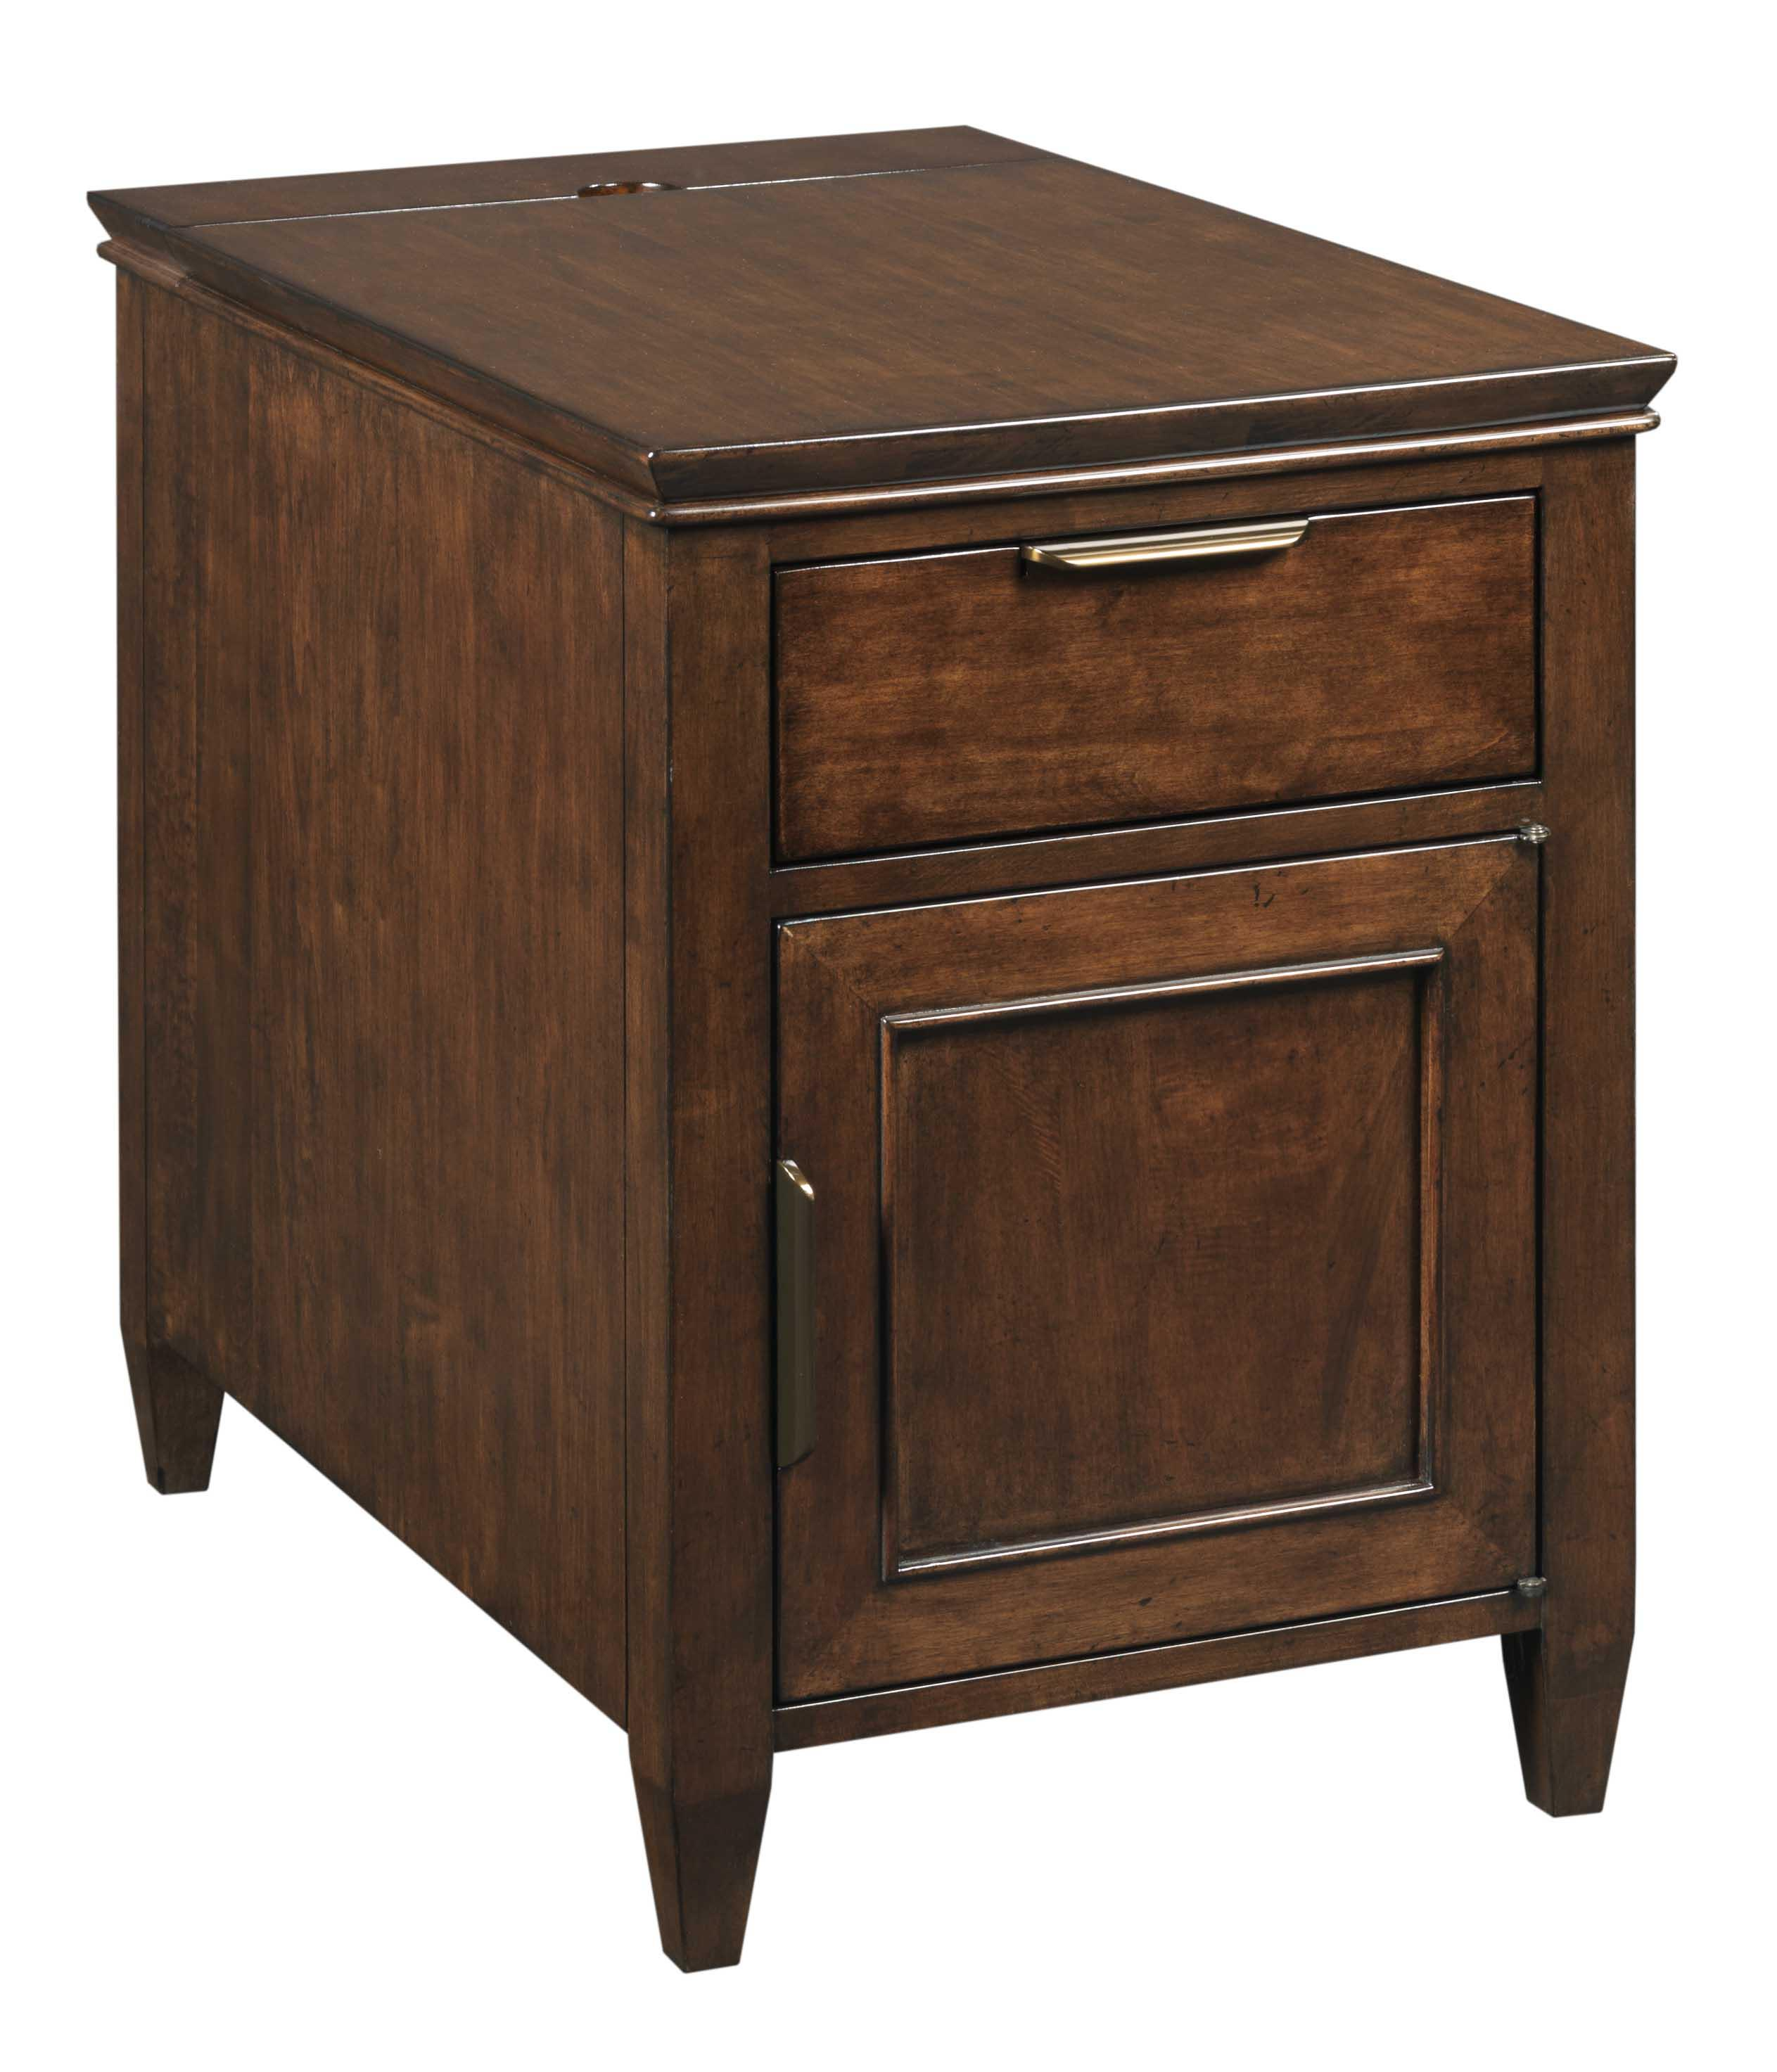 Transitional Elise Chairside Chest With Electrical Outlets By Kincaid Furniture Wolf And